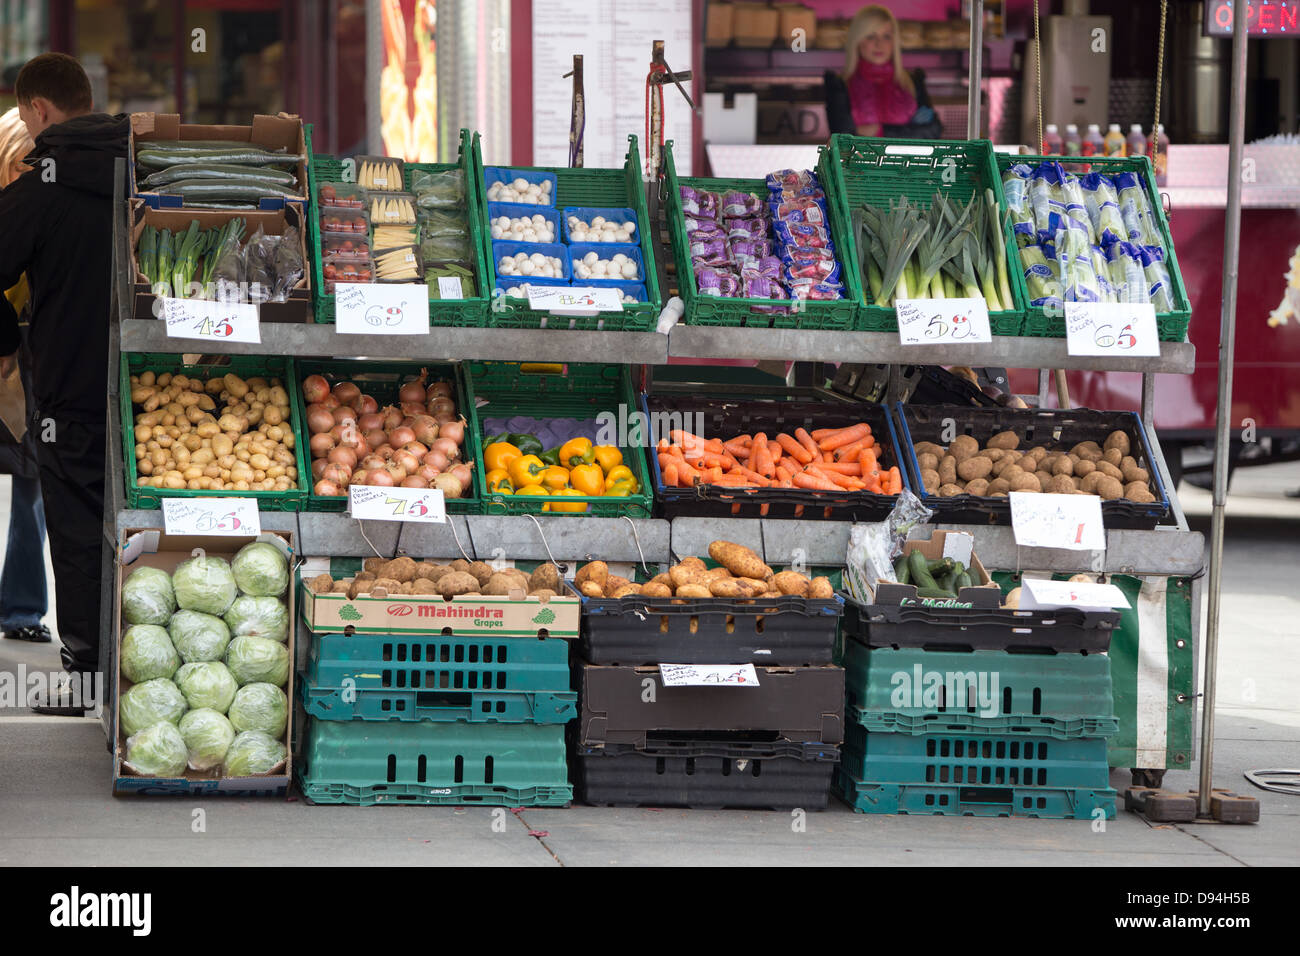 Vegetables on a market stall in Liverpool City Centre - Stock Image